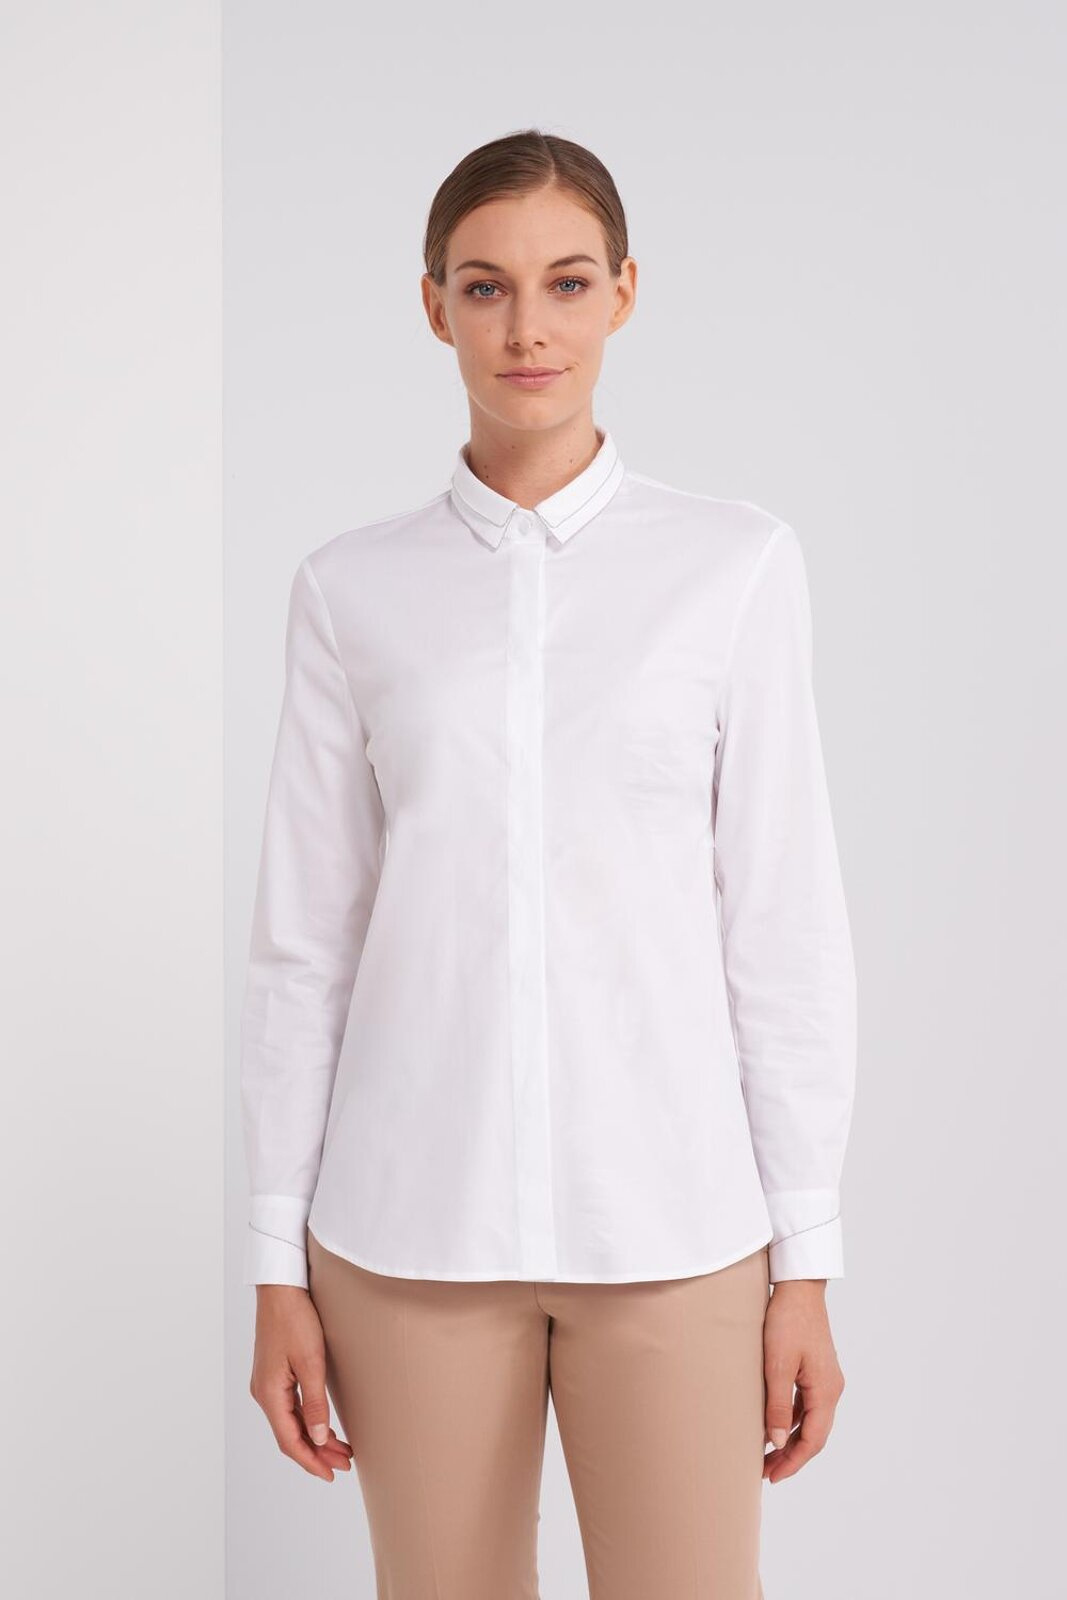 Pure Cotton Stretch Shirt With Long Sleeve Double Collar. Metallic details applied on the neck and cuffs. Slim fit. - Peserico